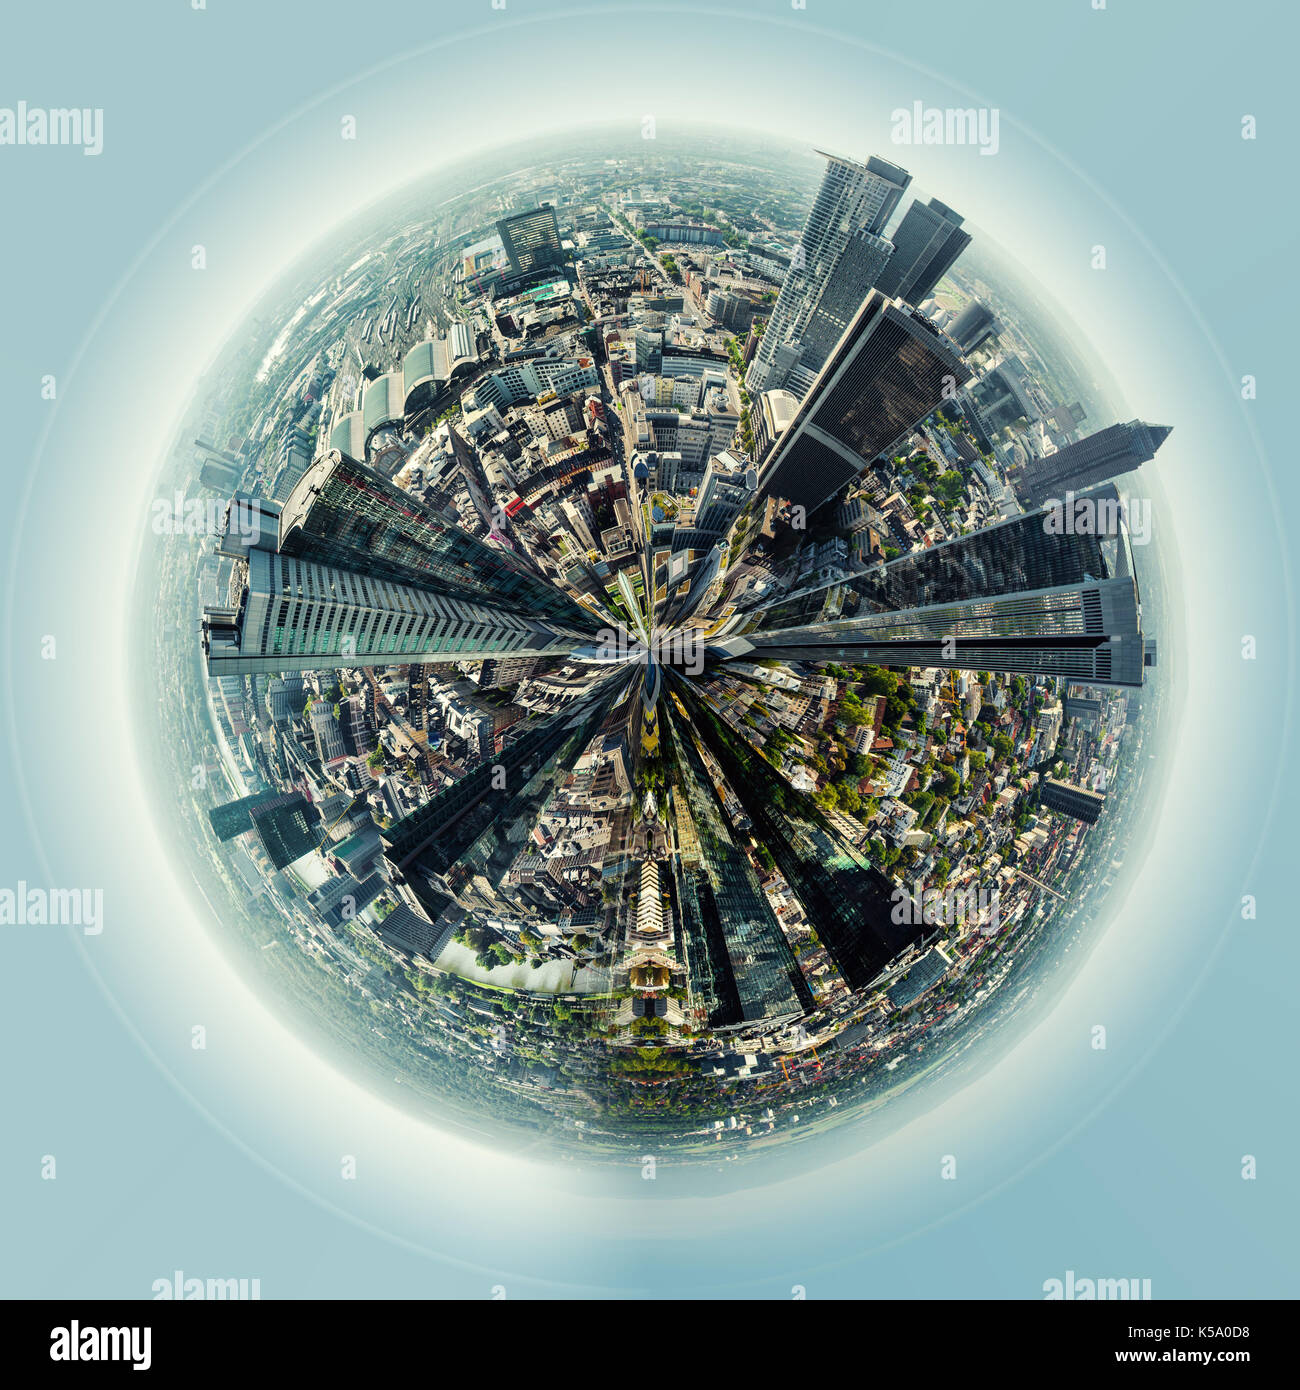 Little planet 360 degree sphere. Panoramic view of Frankfurt am Main city, Germany - Stock Image